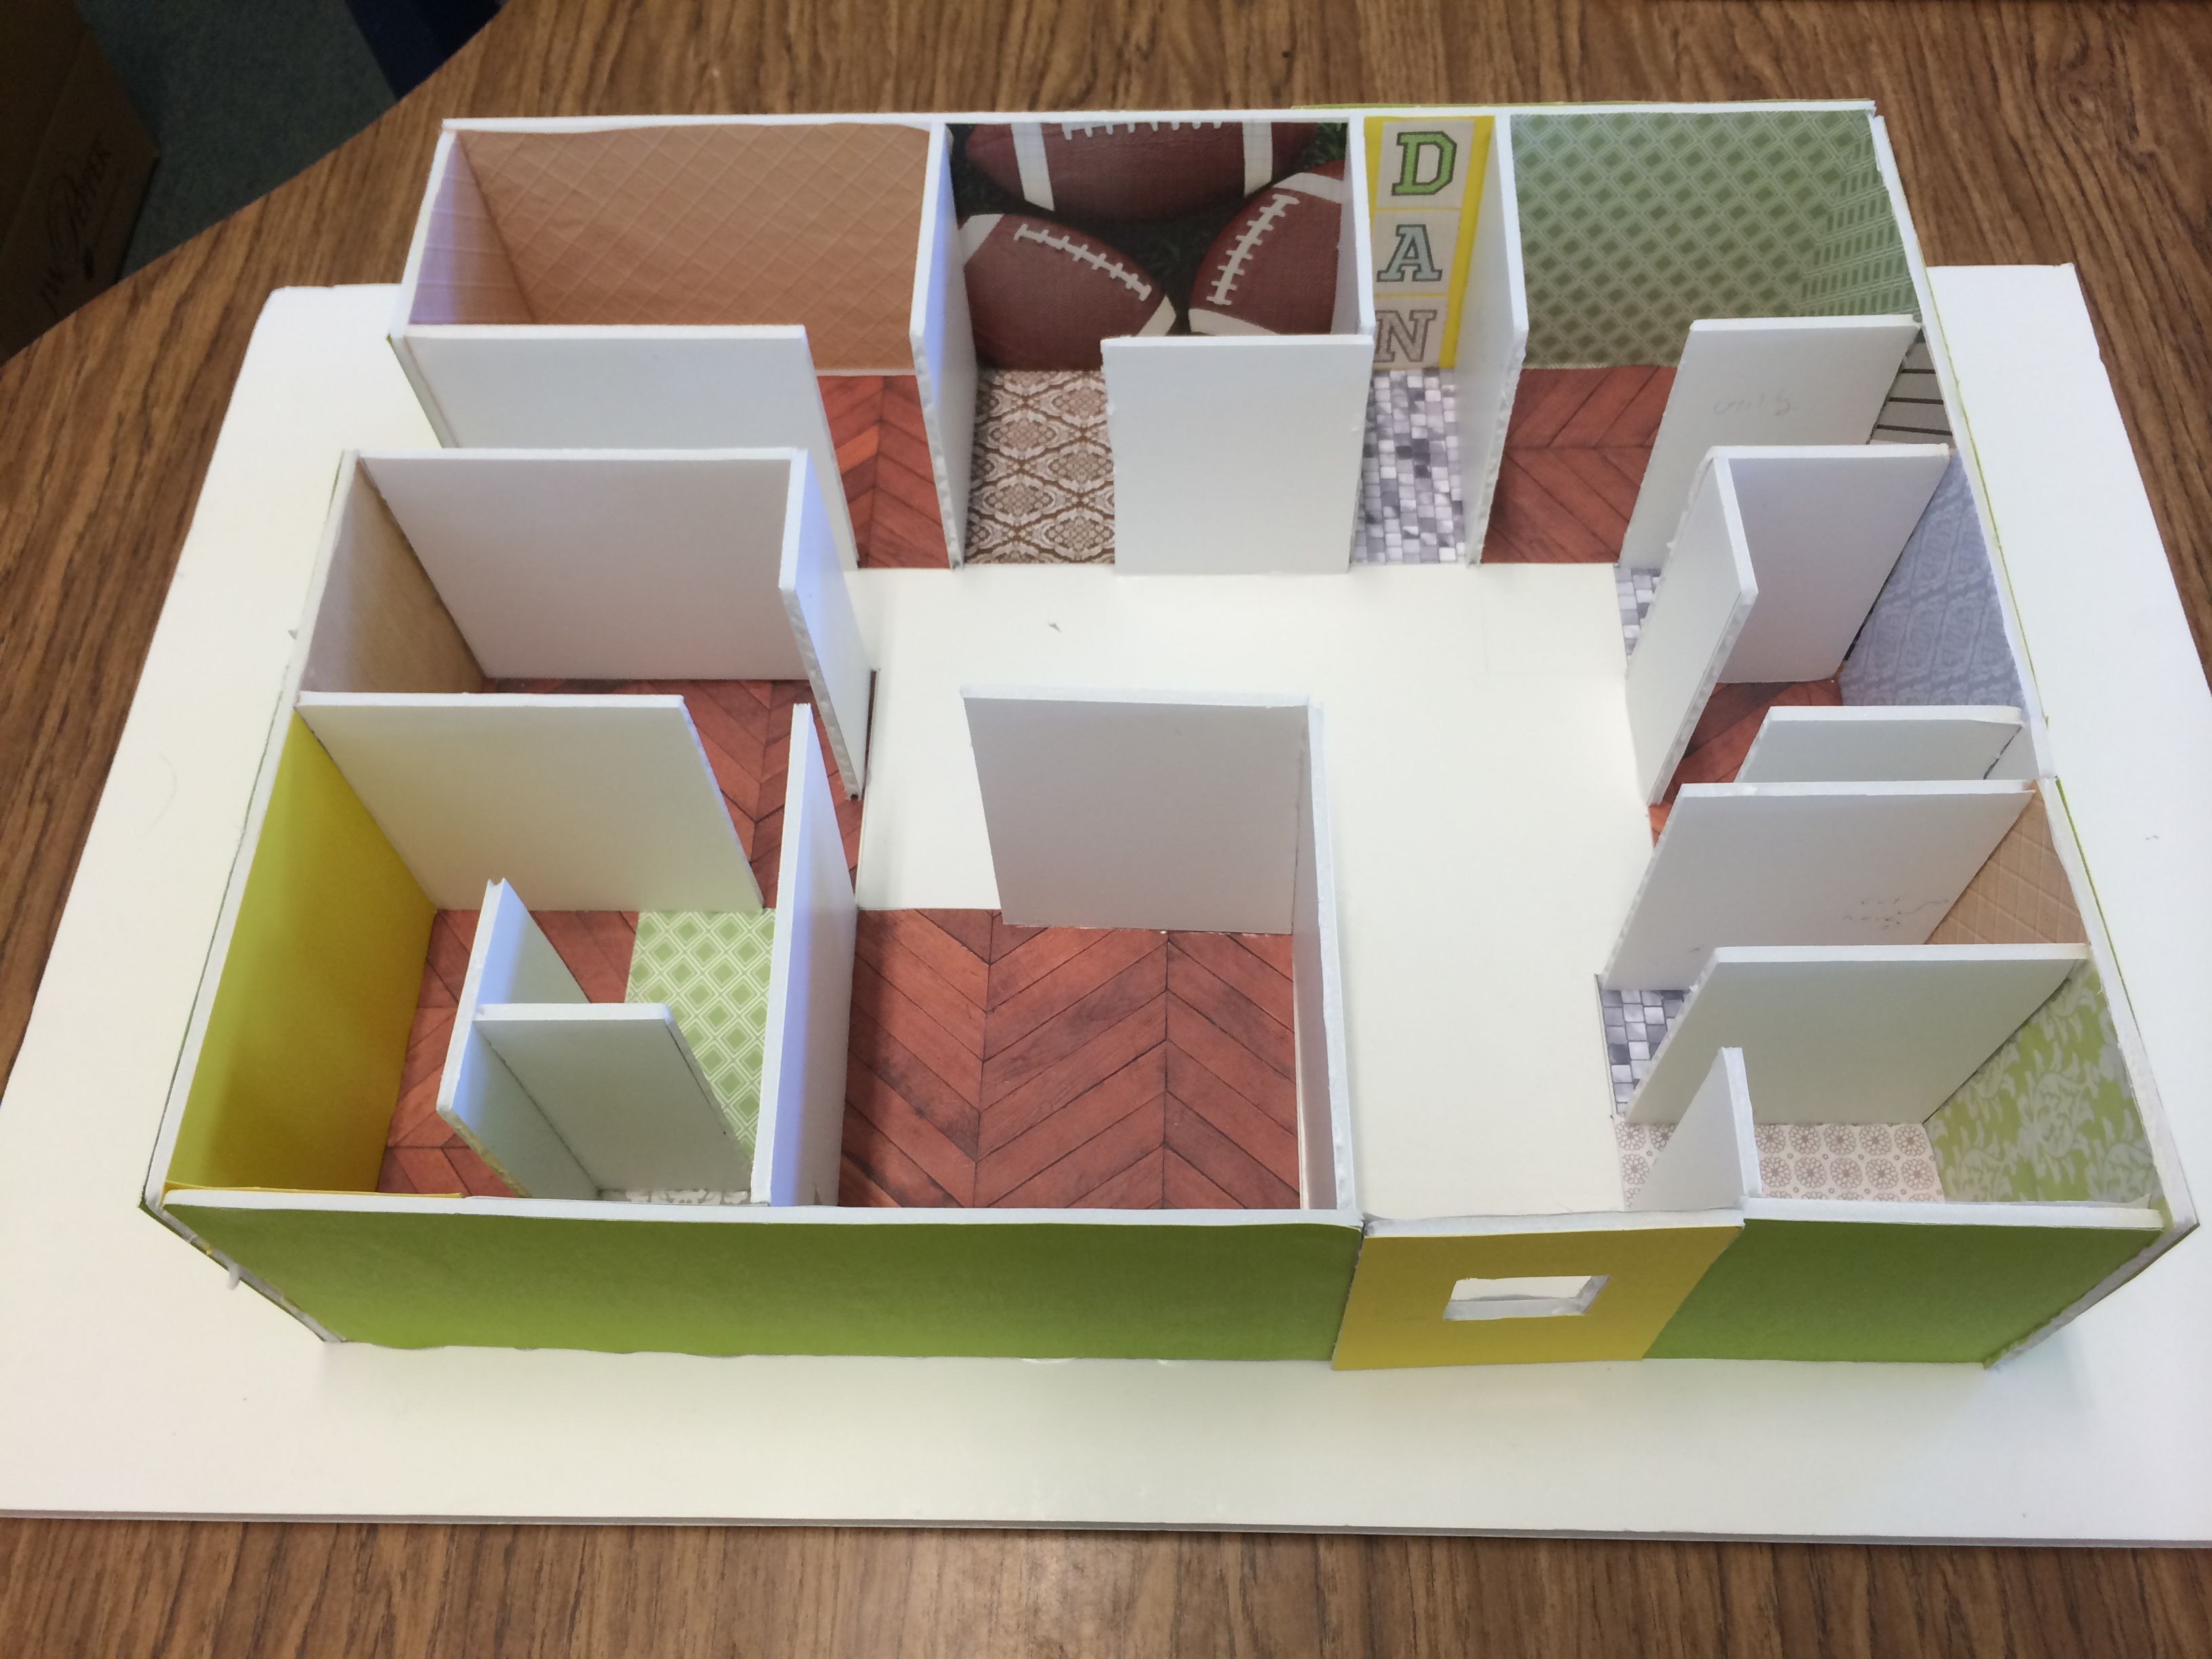 best ideas about geometry dream house project 19 best ideas about geometry dream house project models the area and other